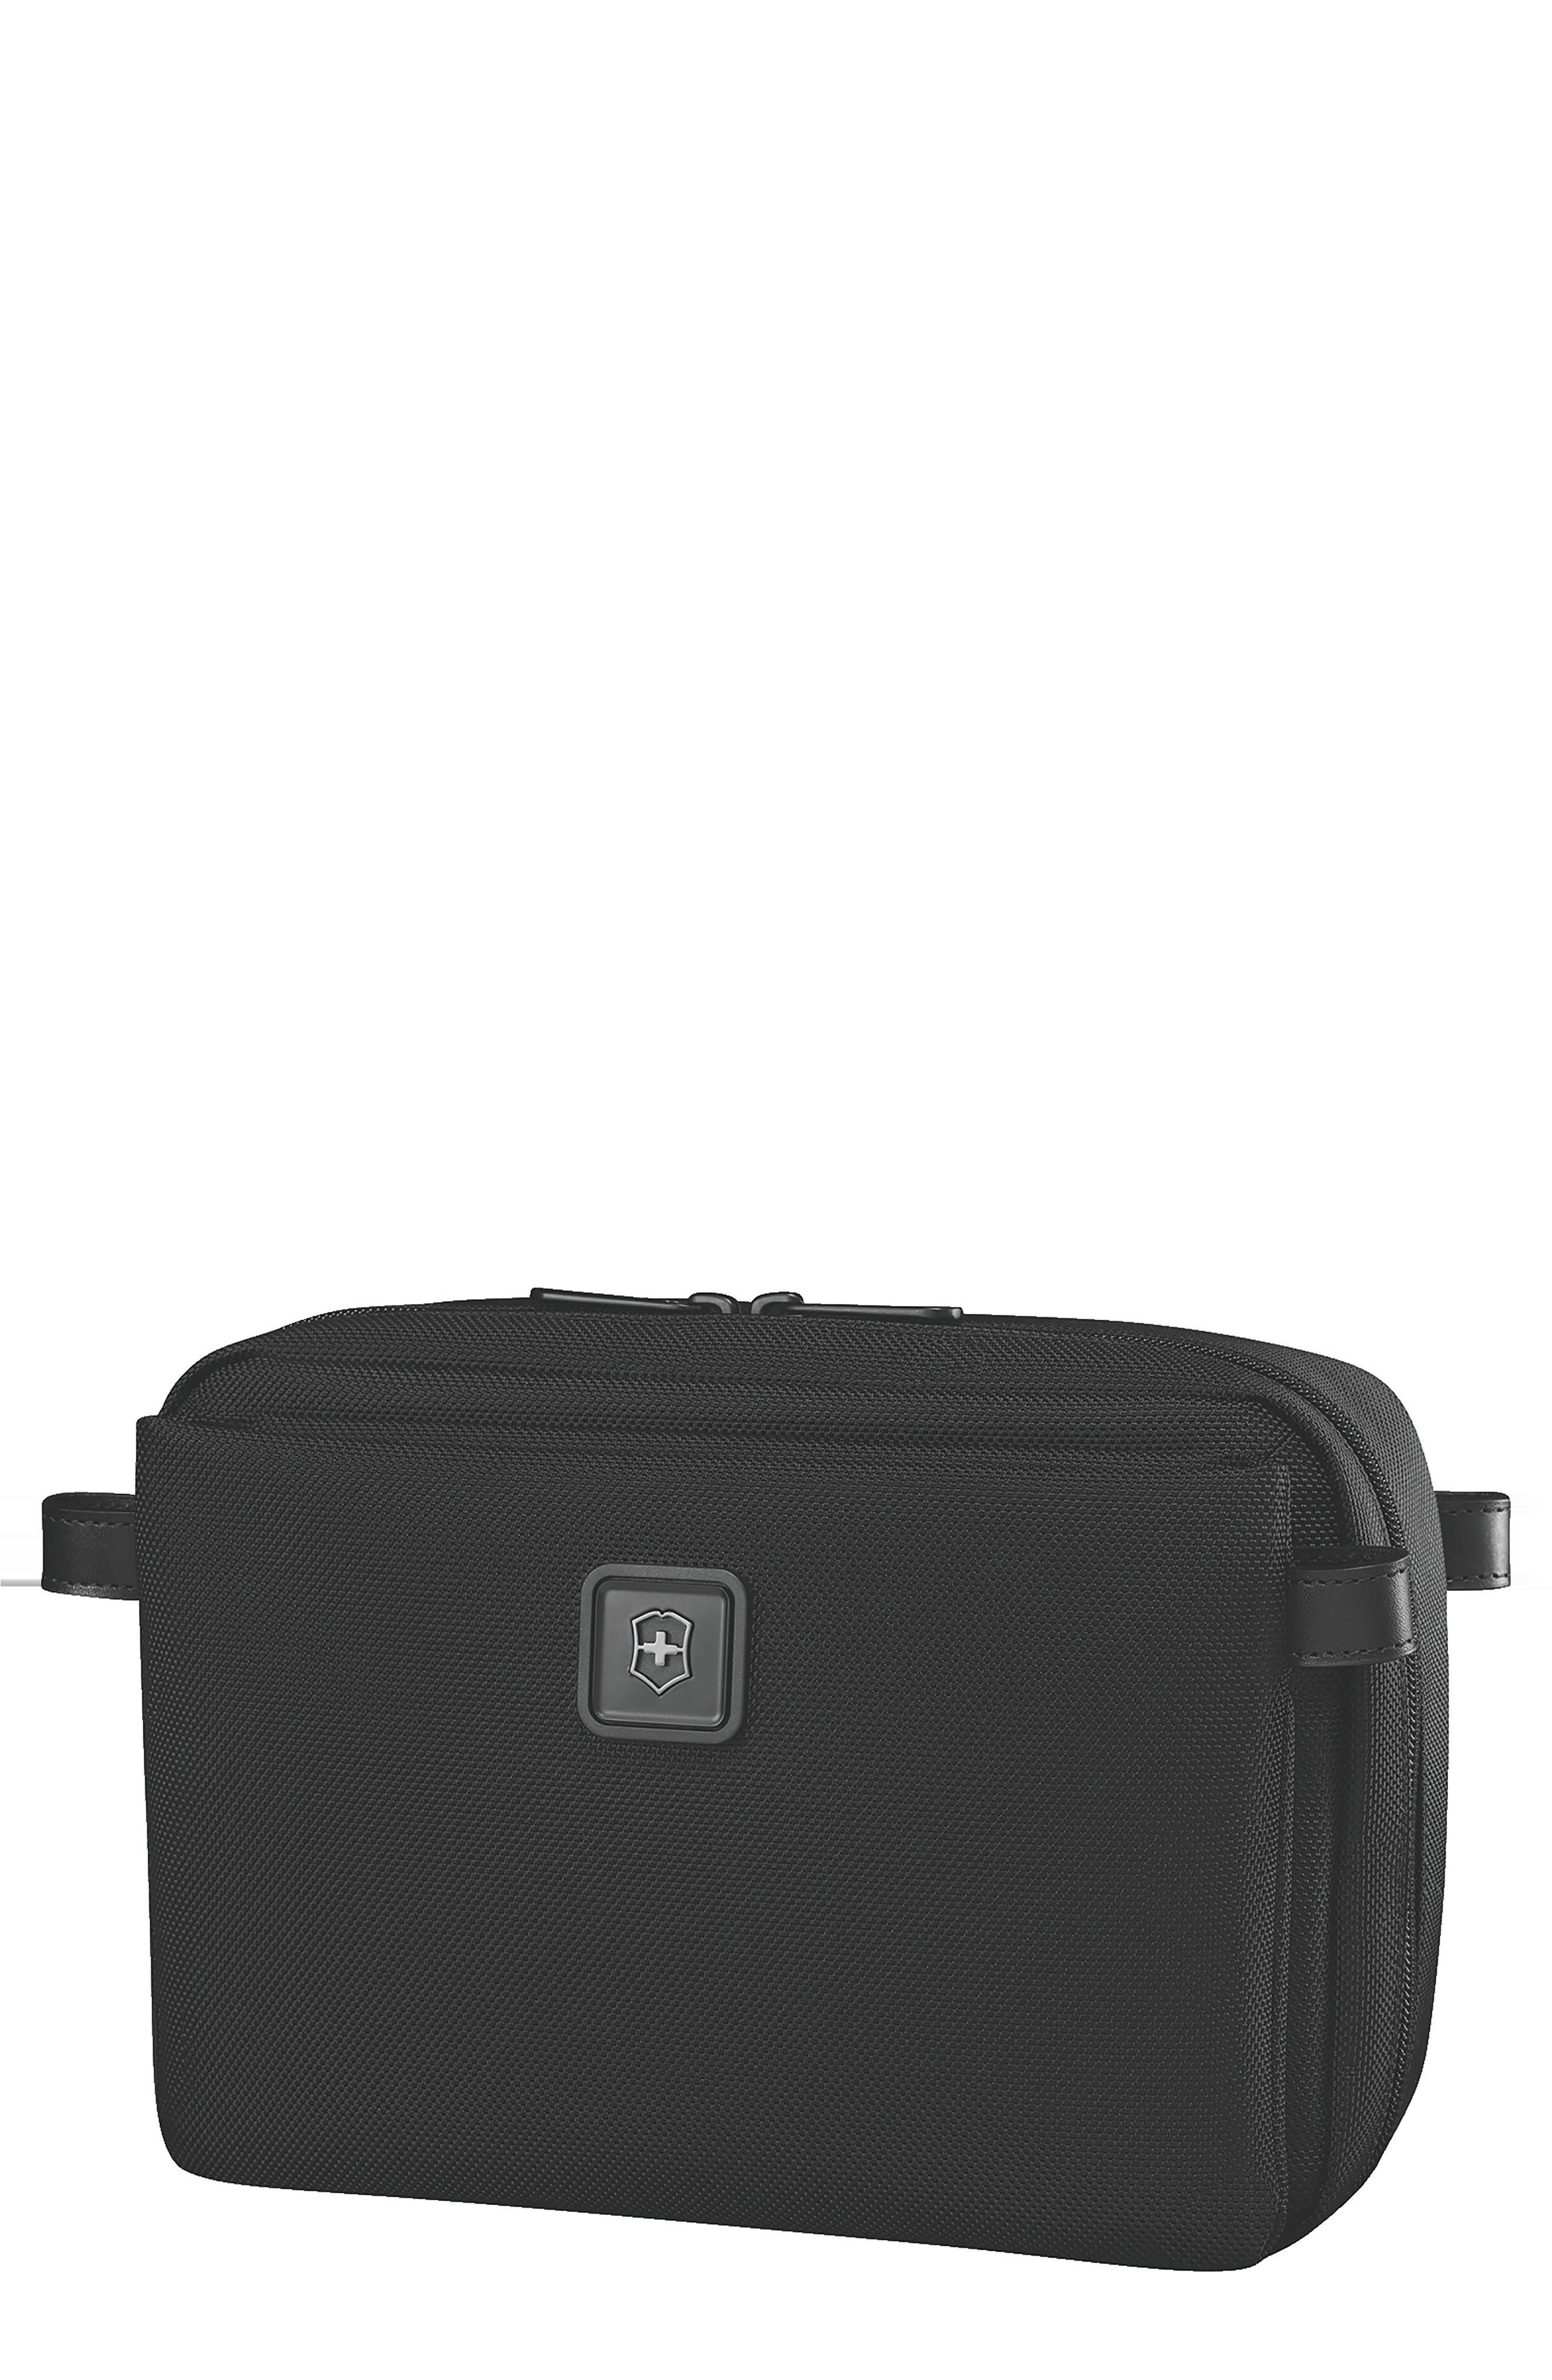 Lexicon 2.0 Travel Kit,                             Main thumbnail 1, color,                             Black